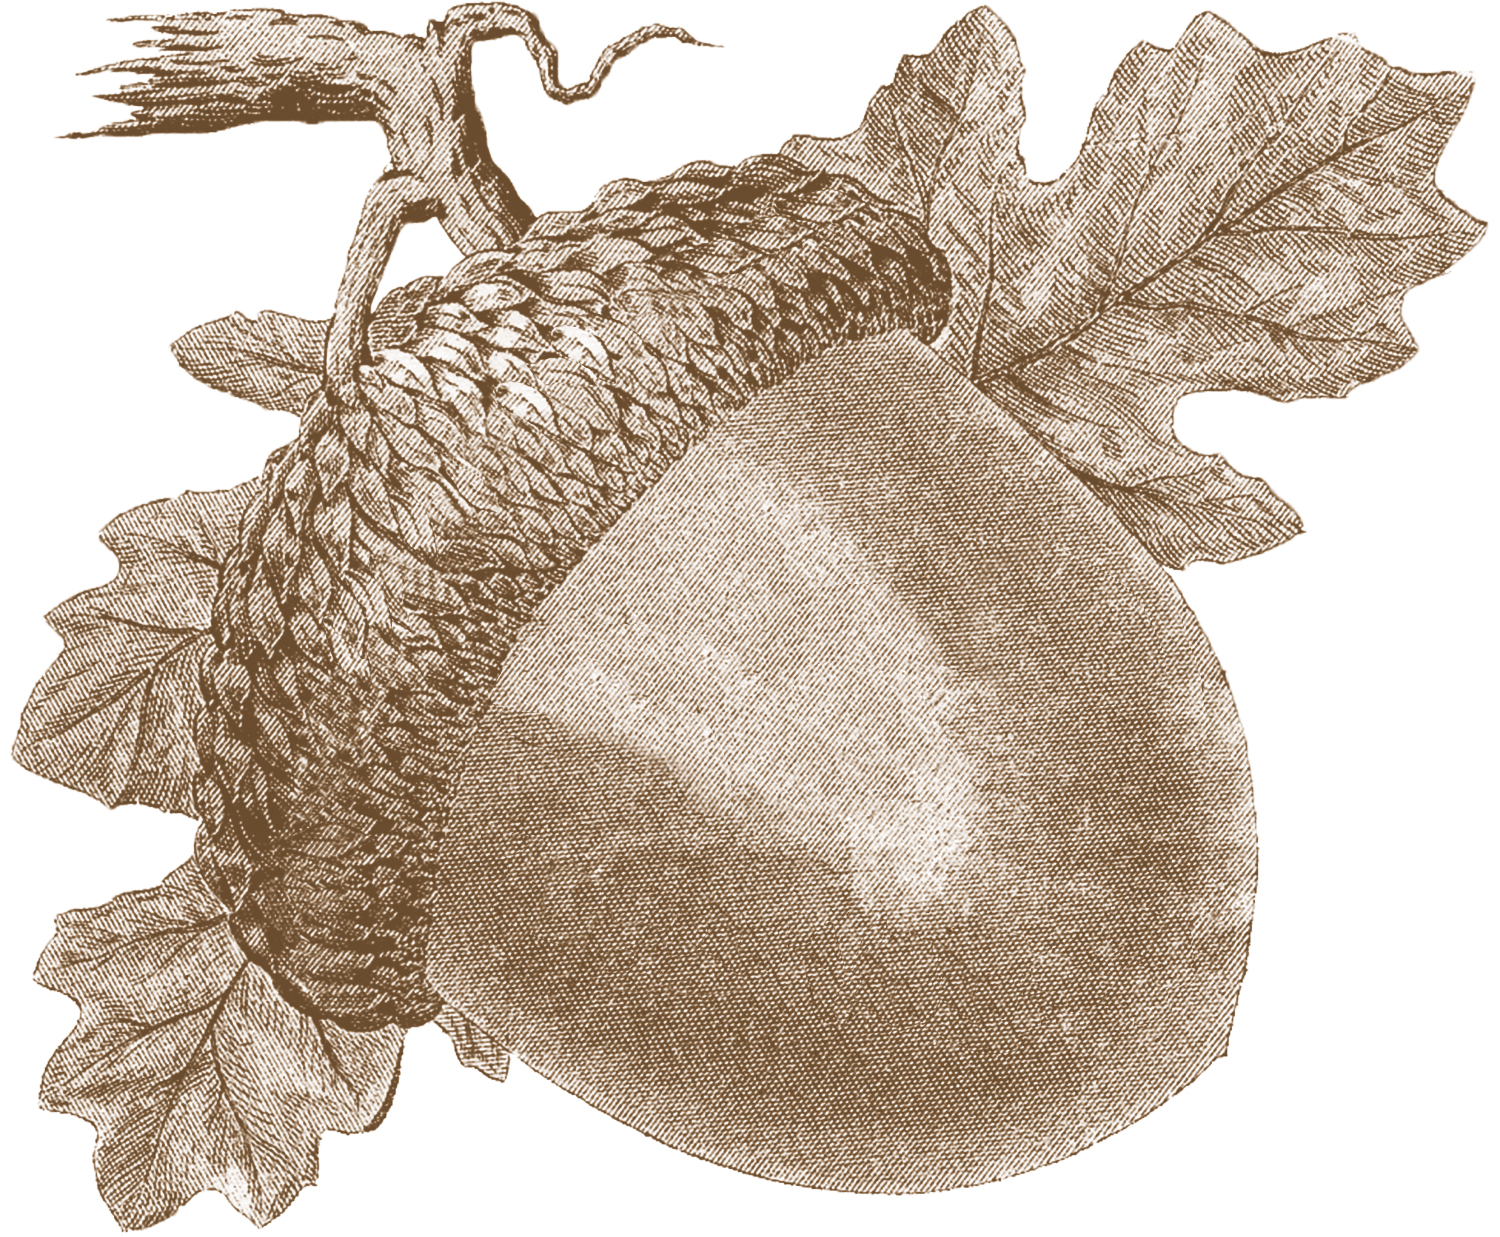 Images fall the graphics. Acorn clipart vintage